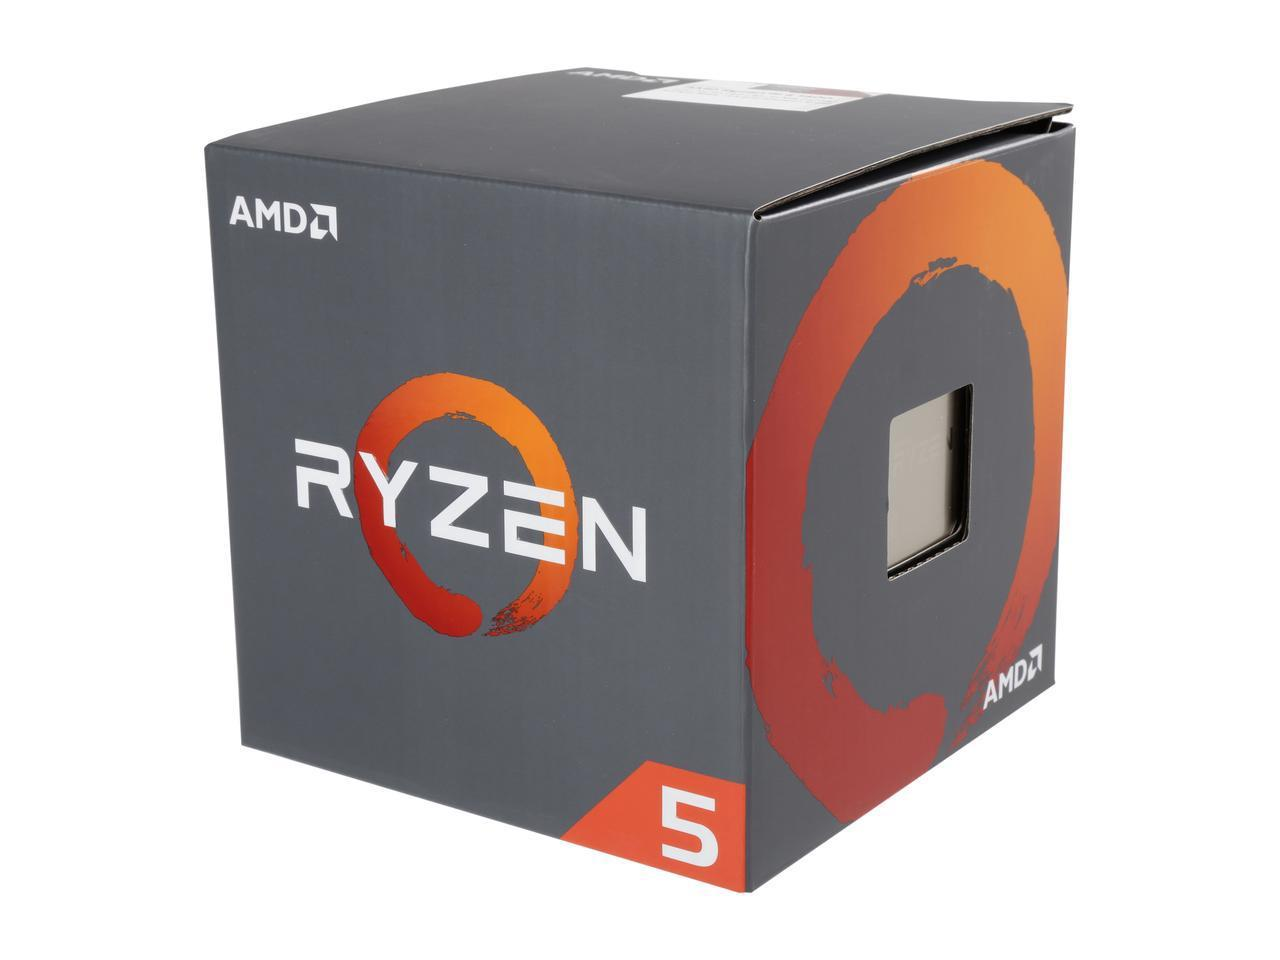 Процесор AMD RYZEN 5 1400 4-Core 3.2 GHz (3.4 GHz Turbo) 10MB/65W/AM4/BOX